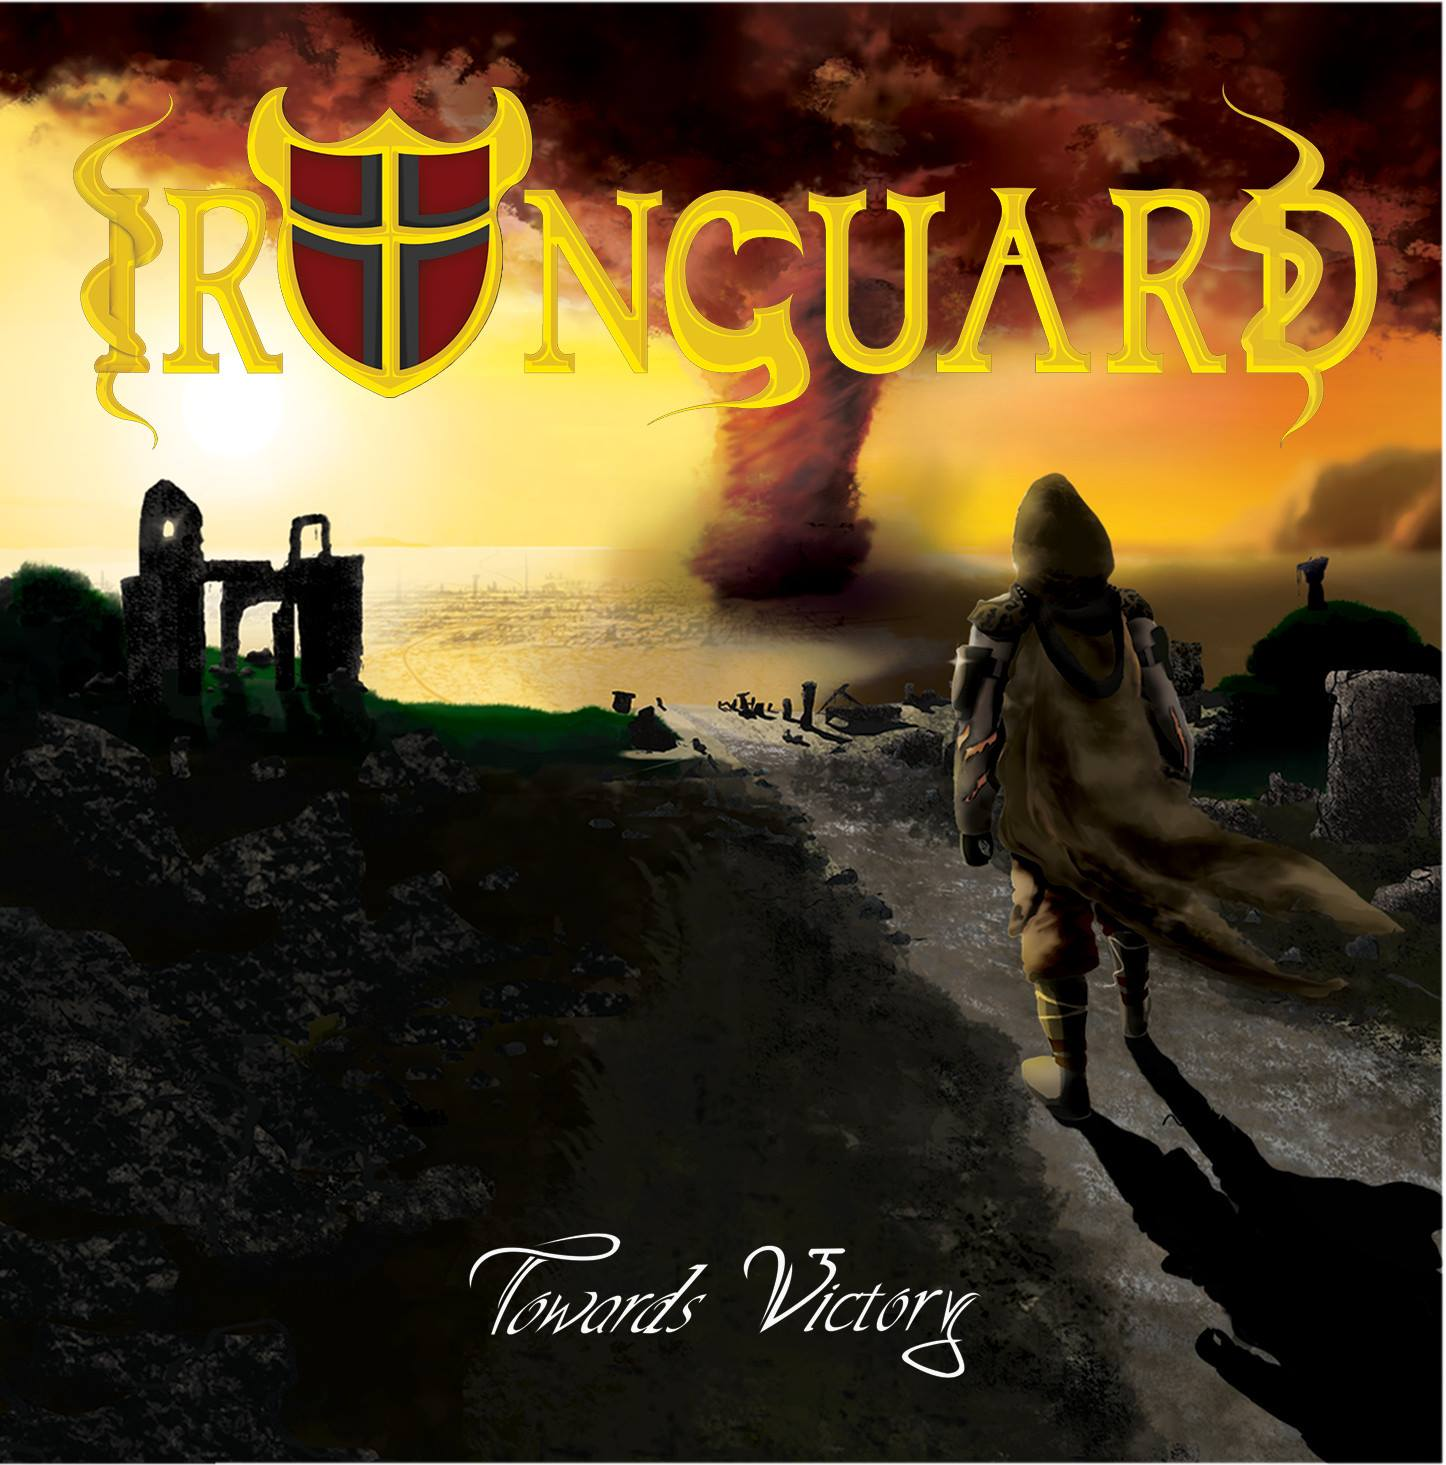 ironguard-towards-victory-auf-dem-weg-zum-sieg-album-review